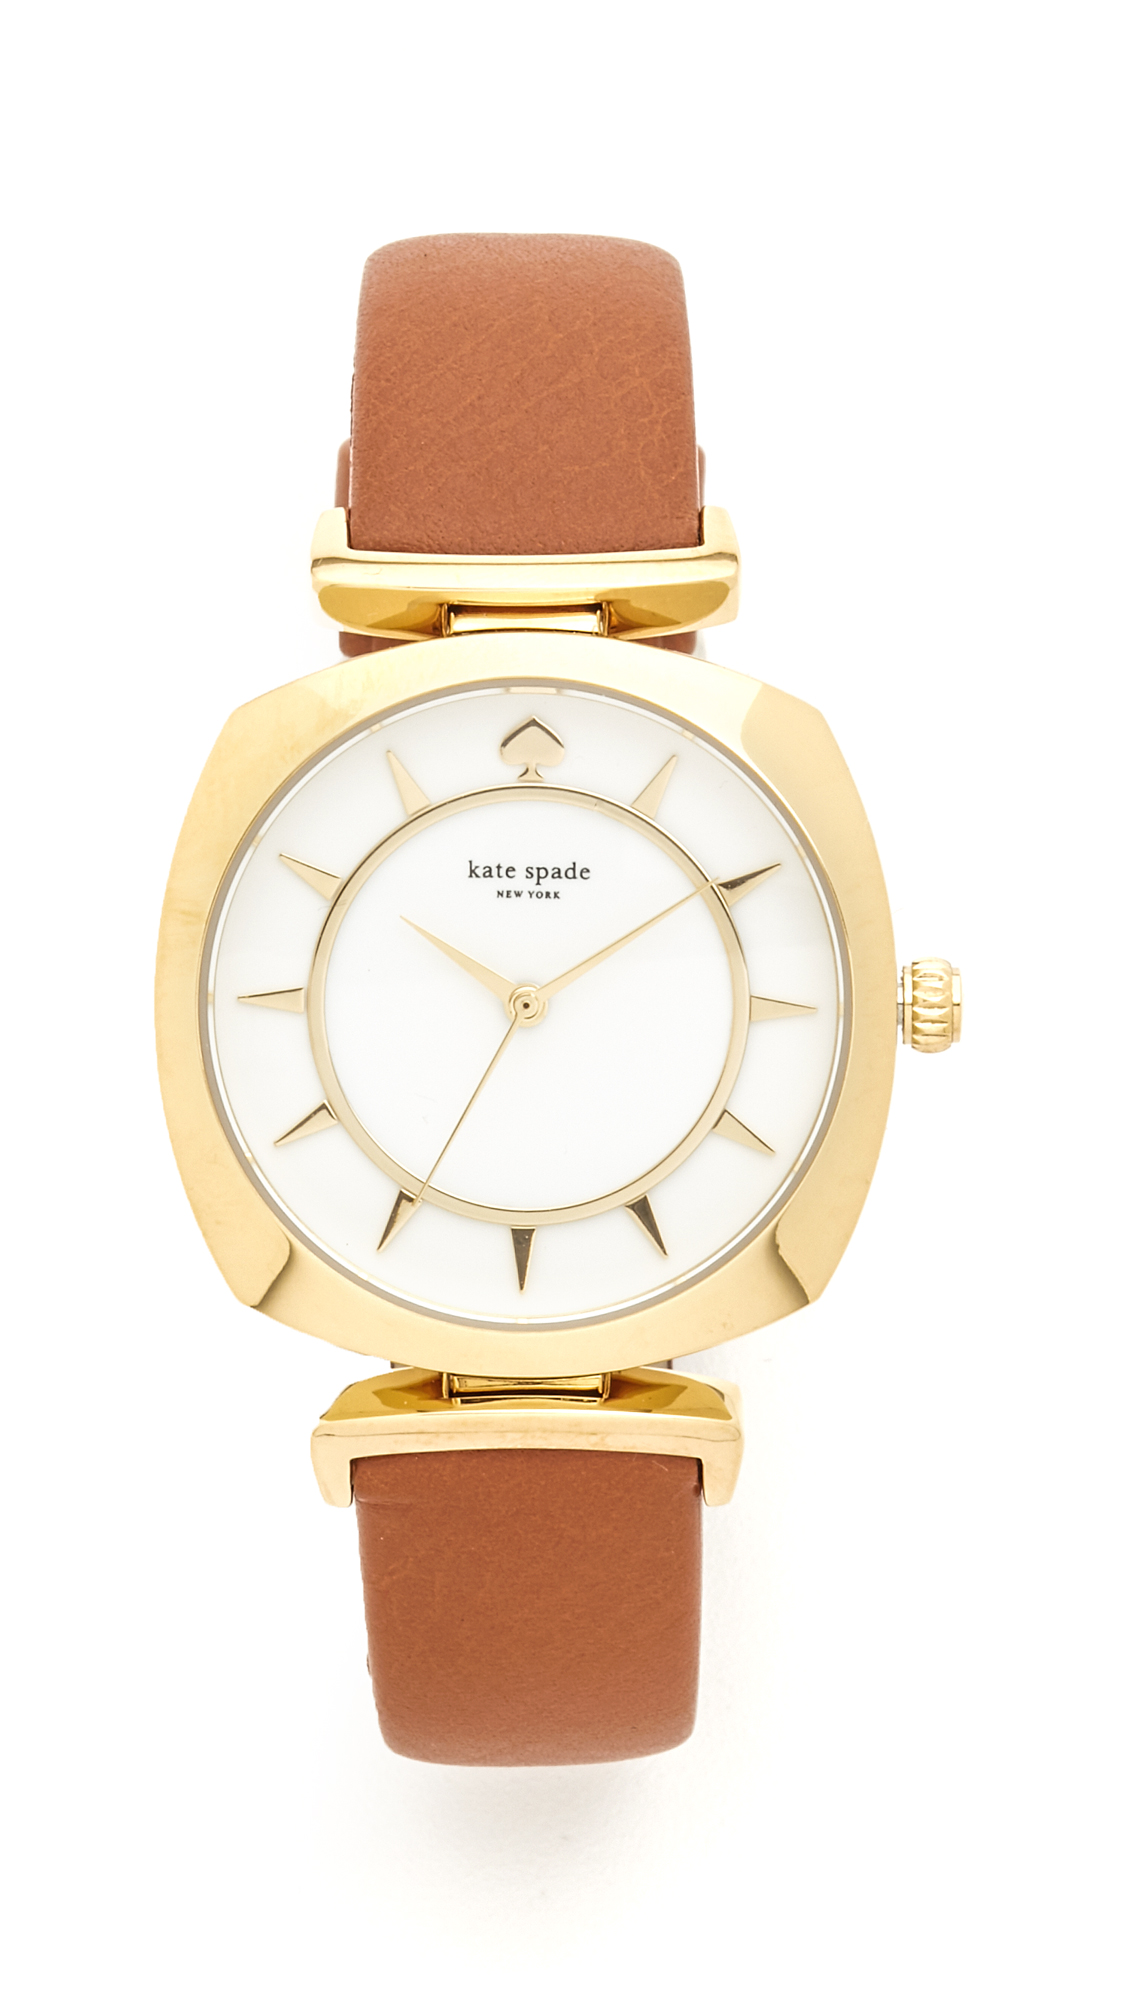 Kate Spade New York Barrow Watch - Brown/Gold at Shopbop